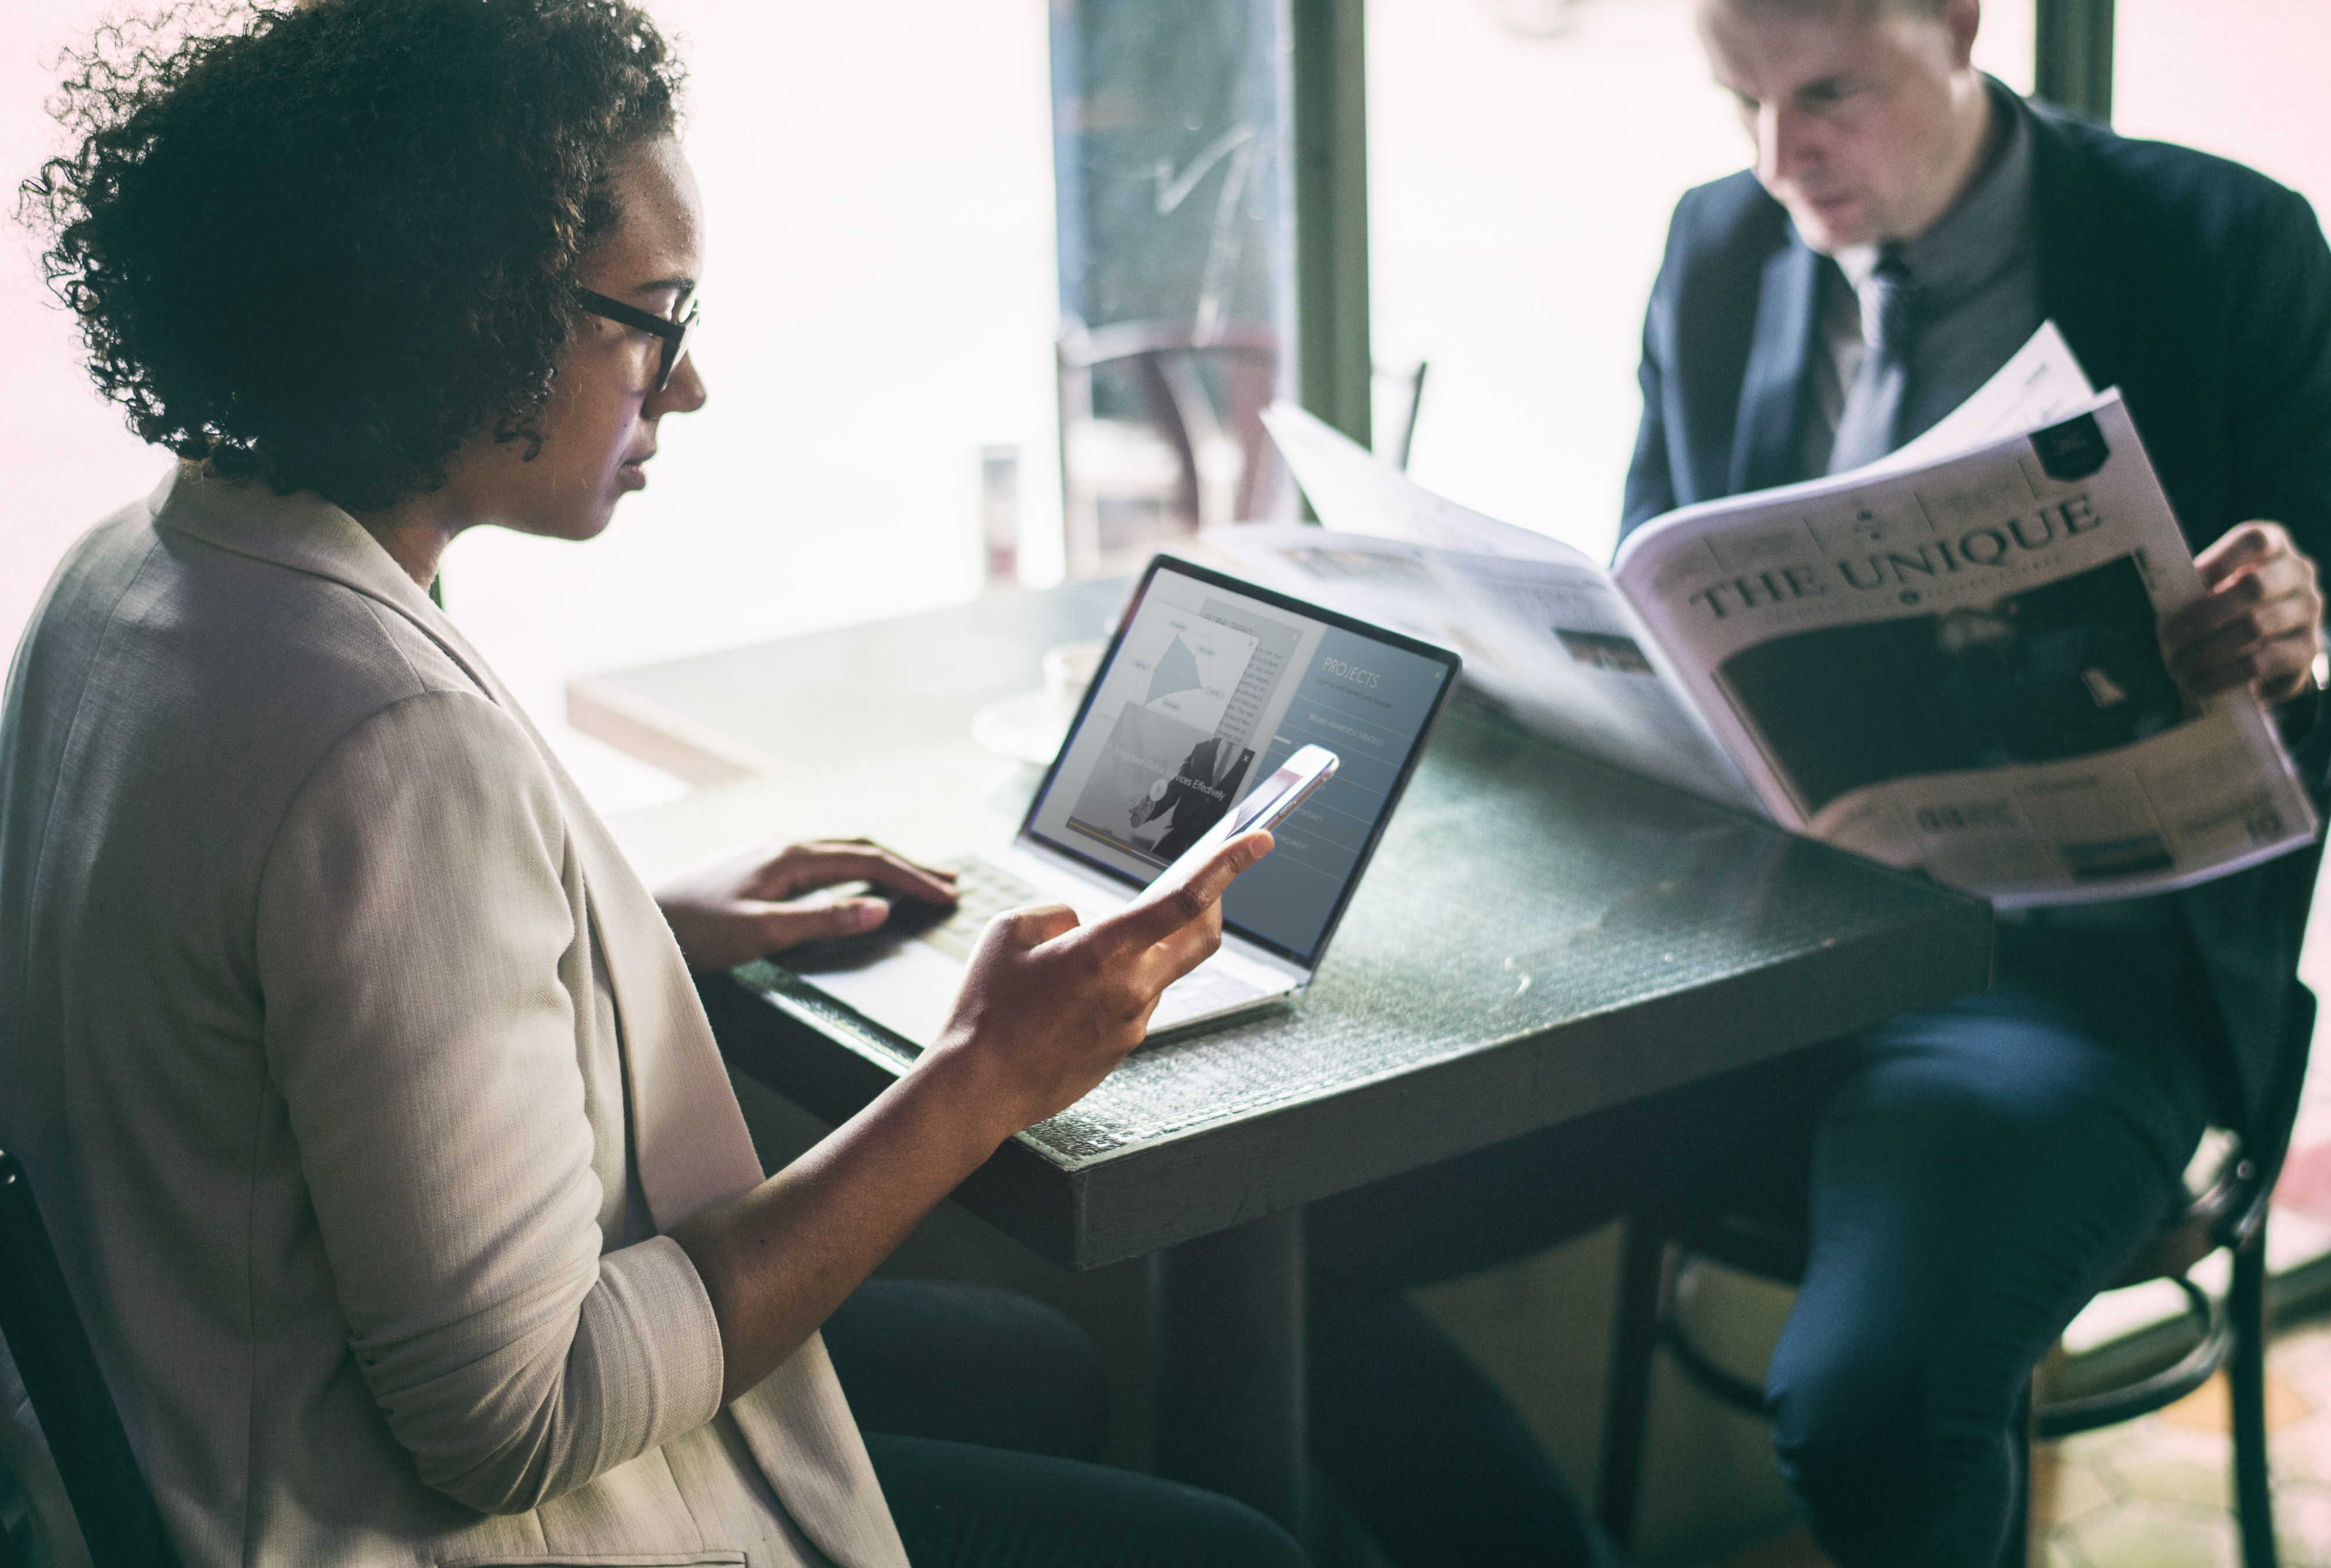 woman using smartphone and laptop in front man reading newspaper